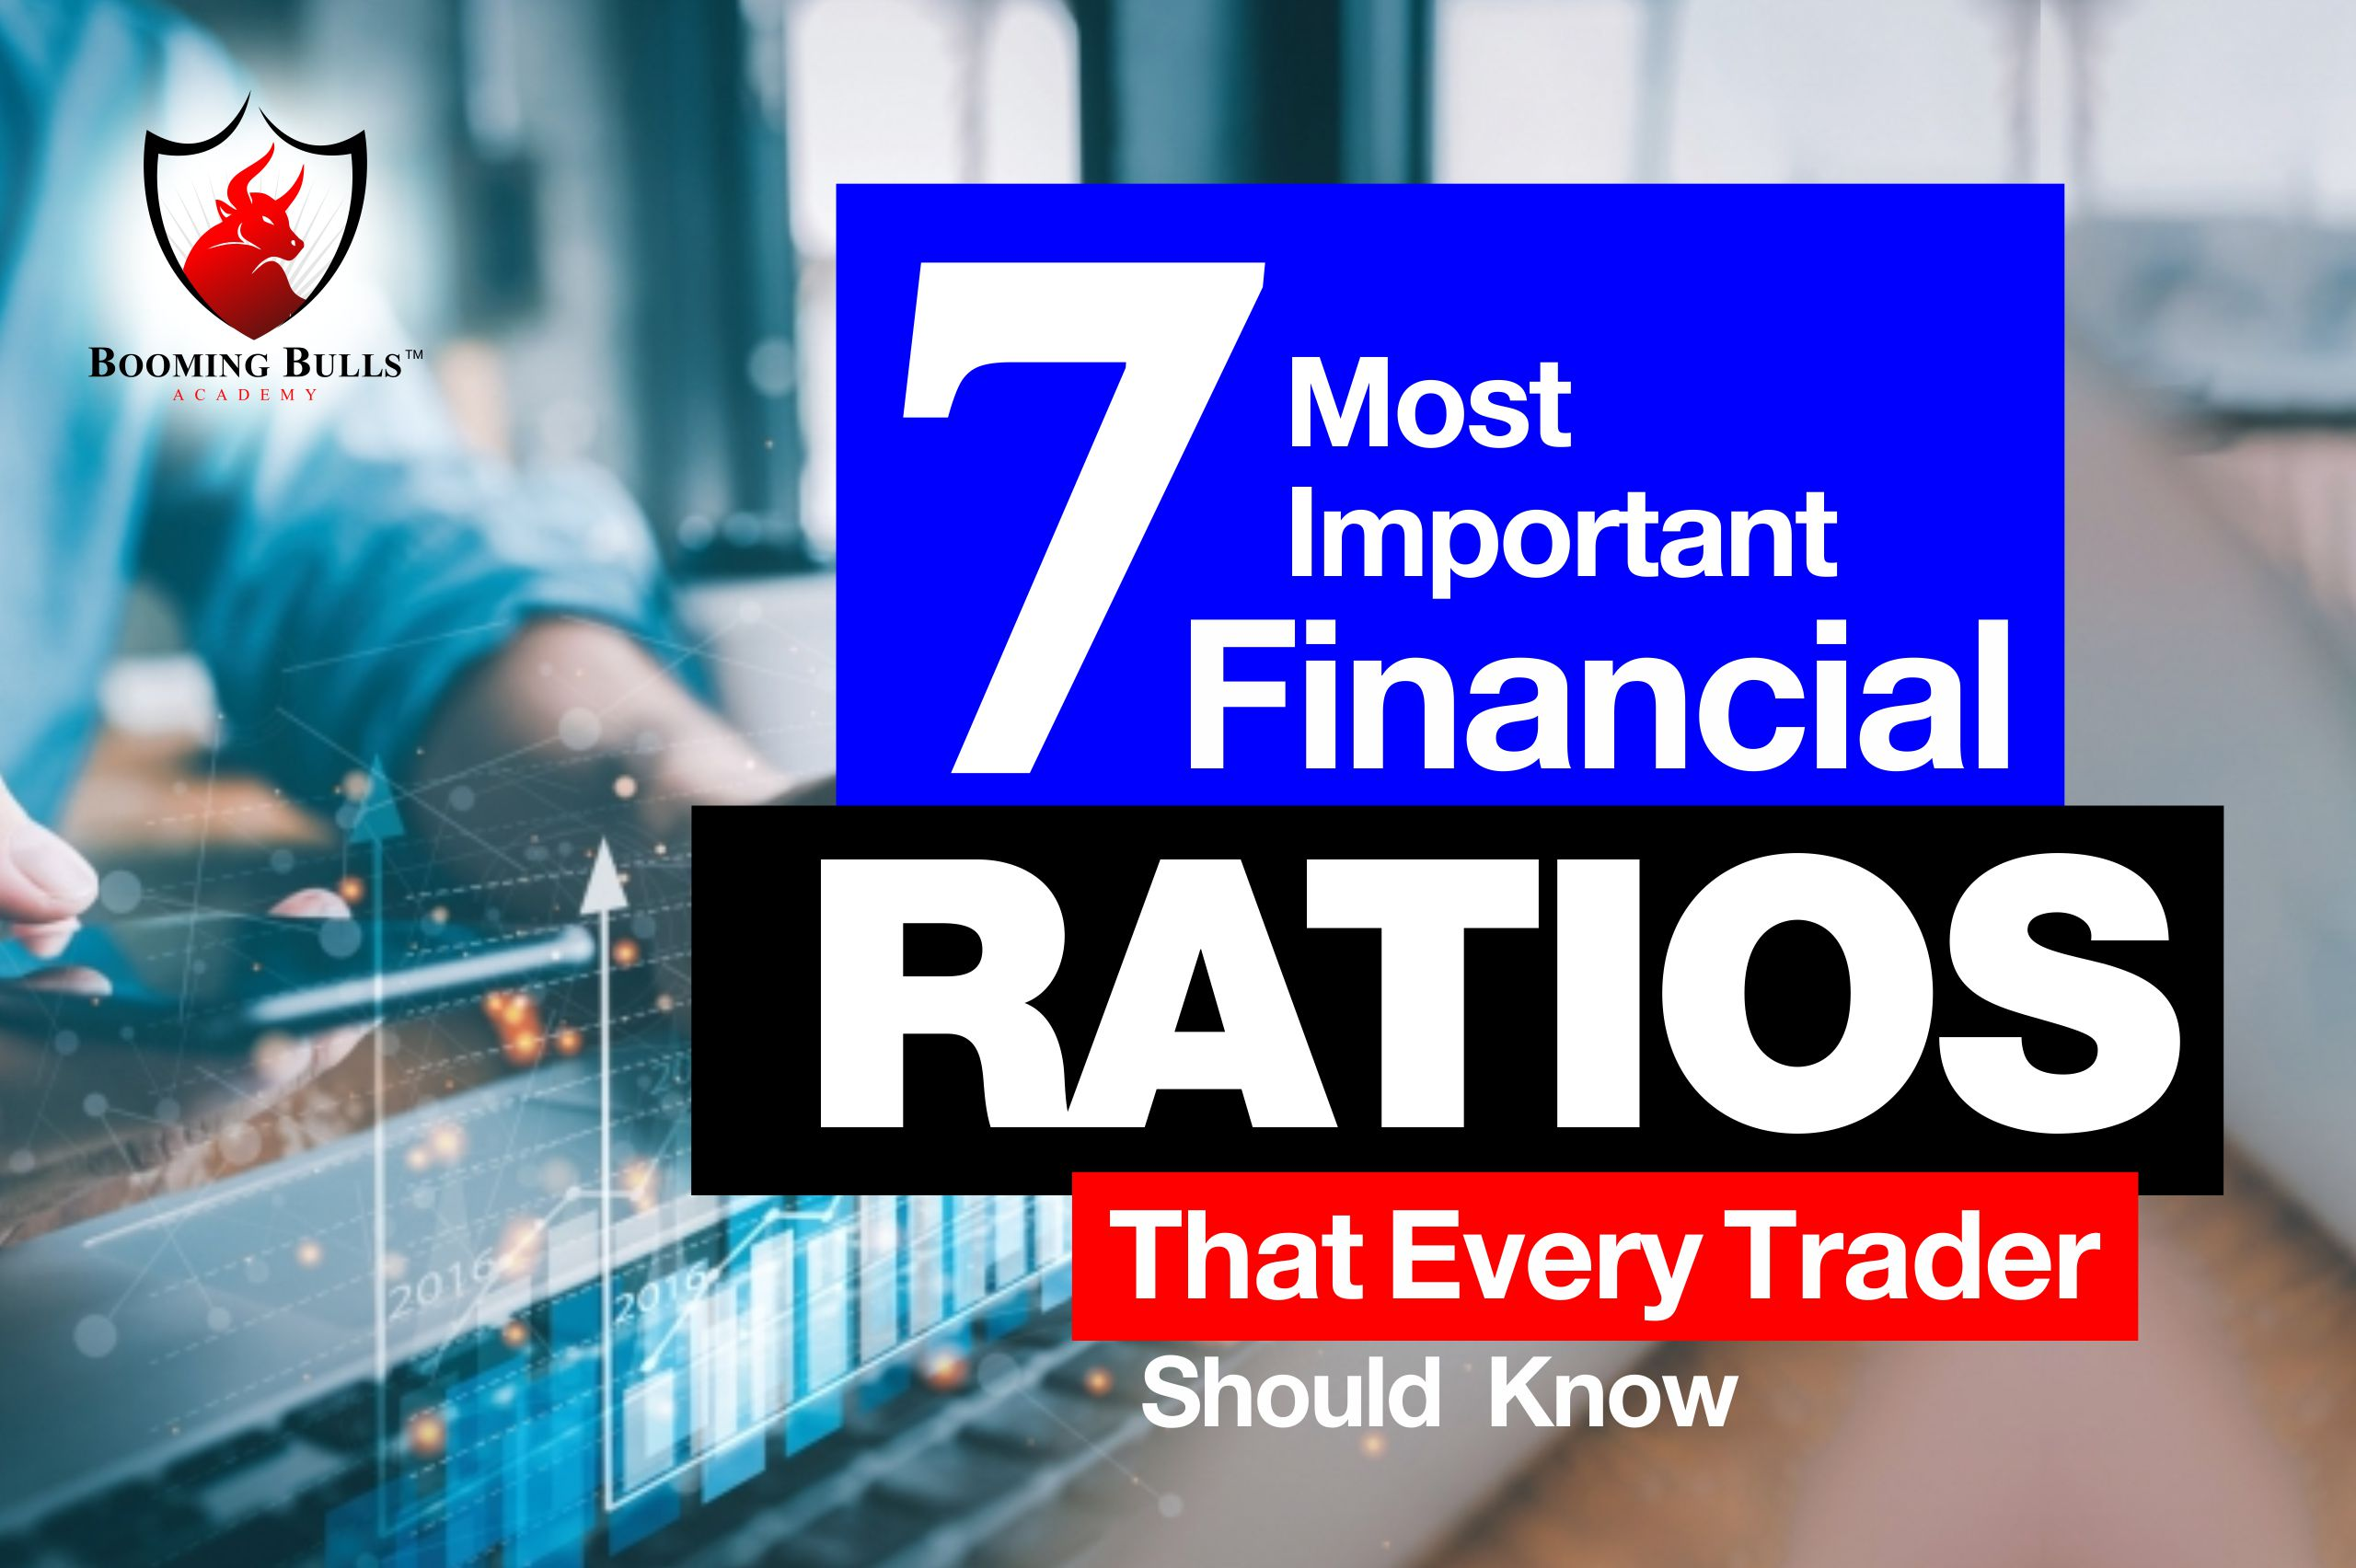 7 Most Important Financial Ratios That Every Trader Should Know